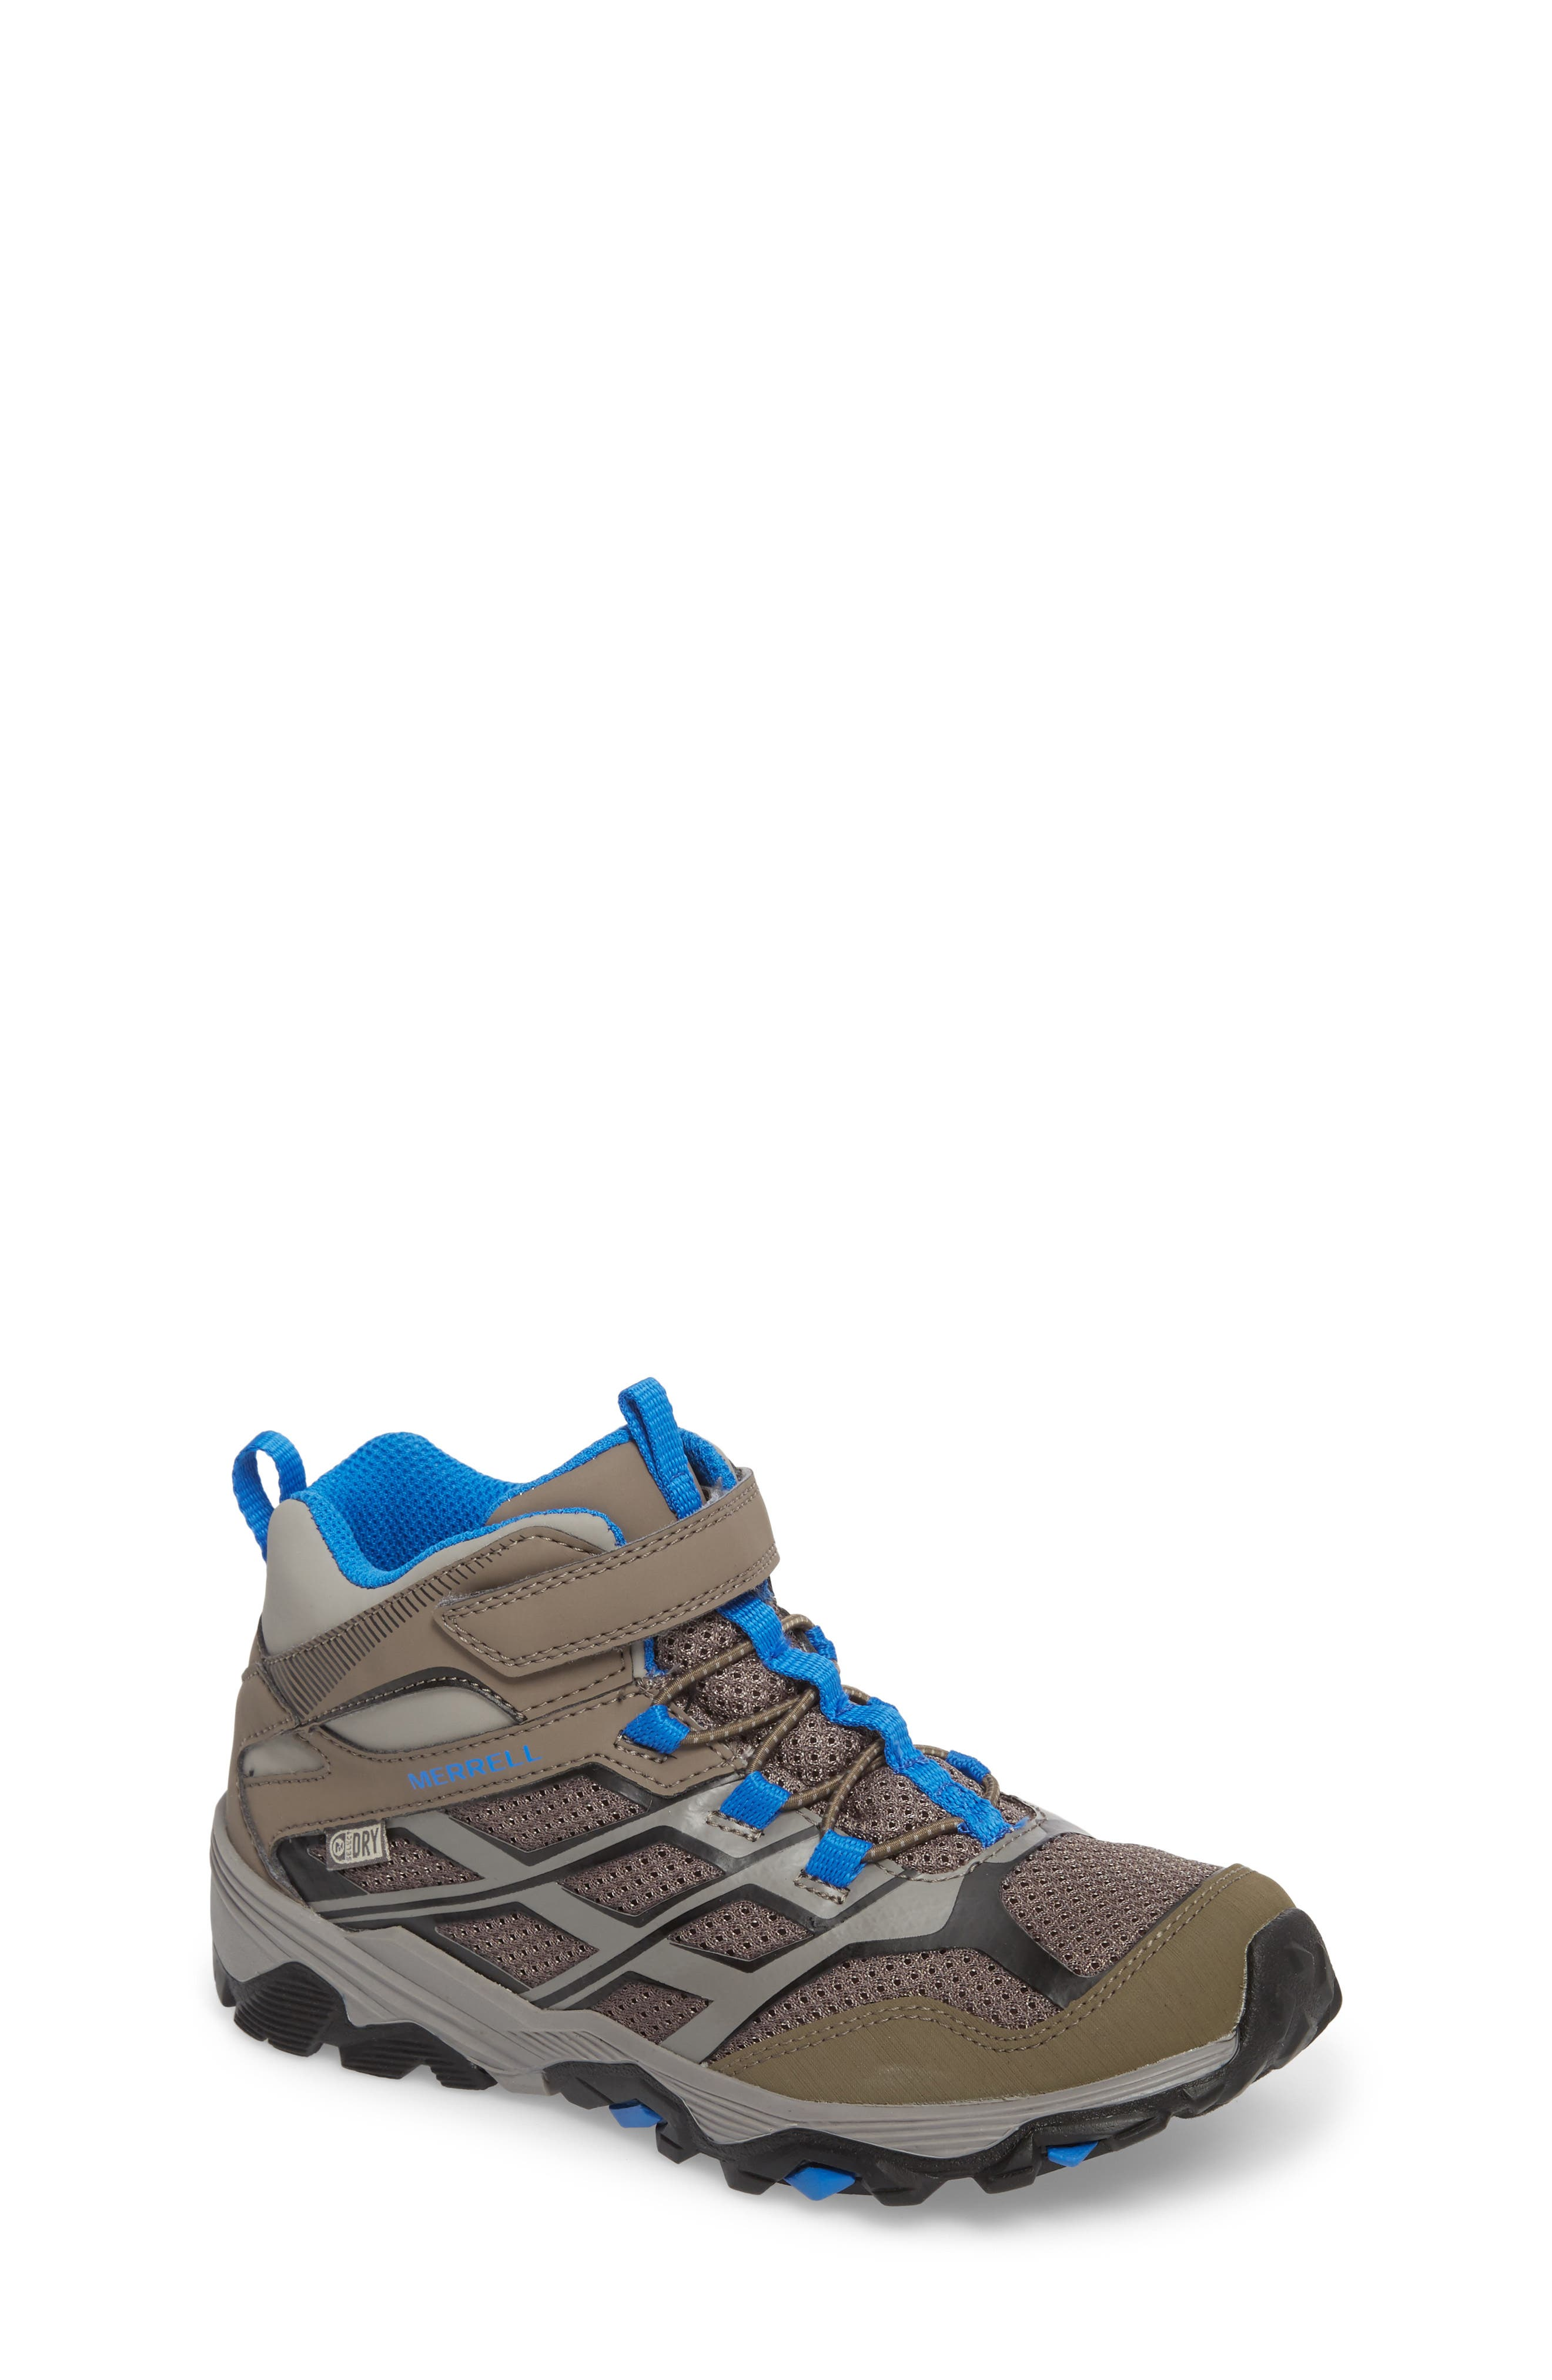 Moab FST Mid Top Waterproof Sneaker Boot,                             Main thumbnail 1, color,                             Grey